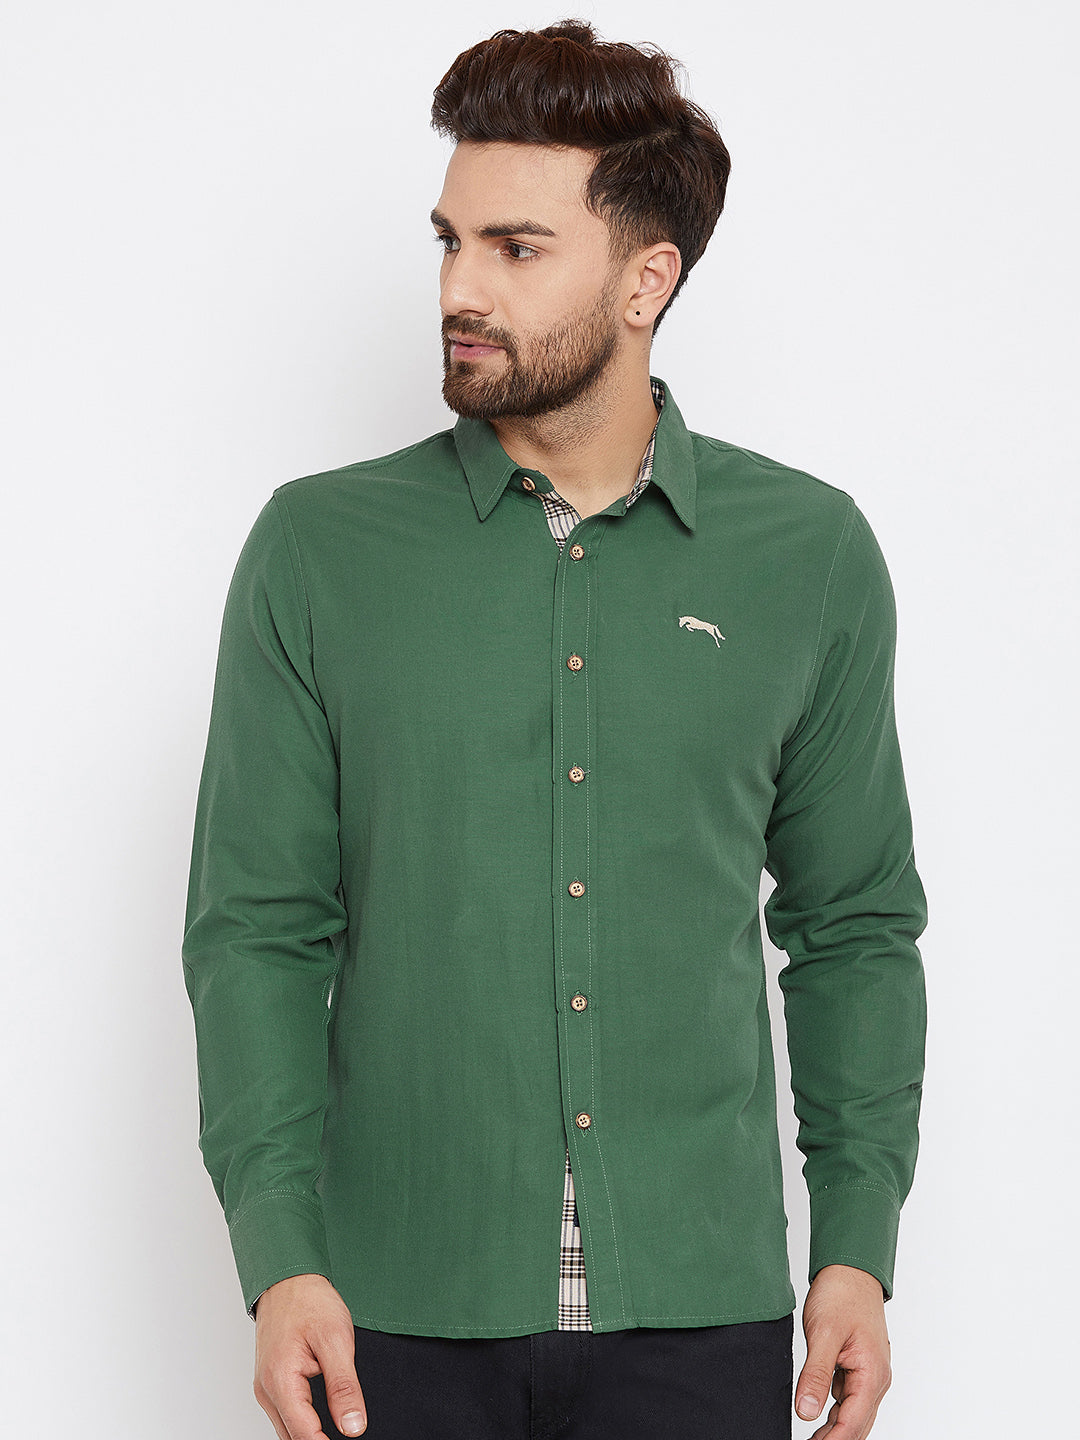 JUMP USA Men Green Regular Fit Solid Casual Shirt